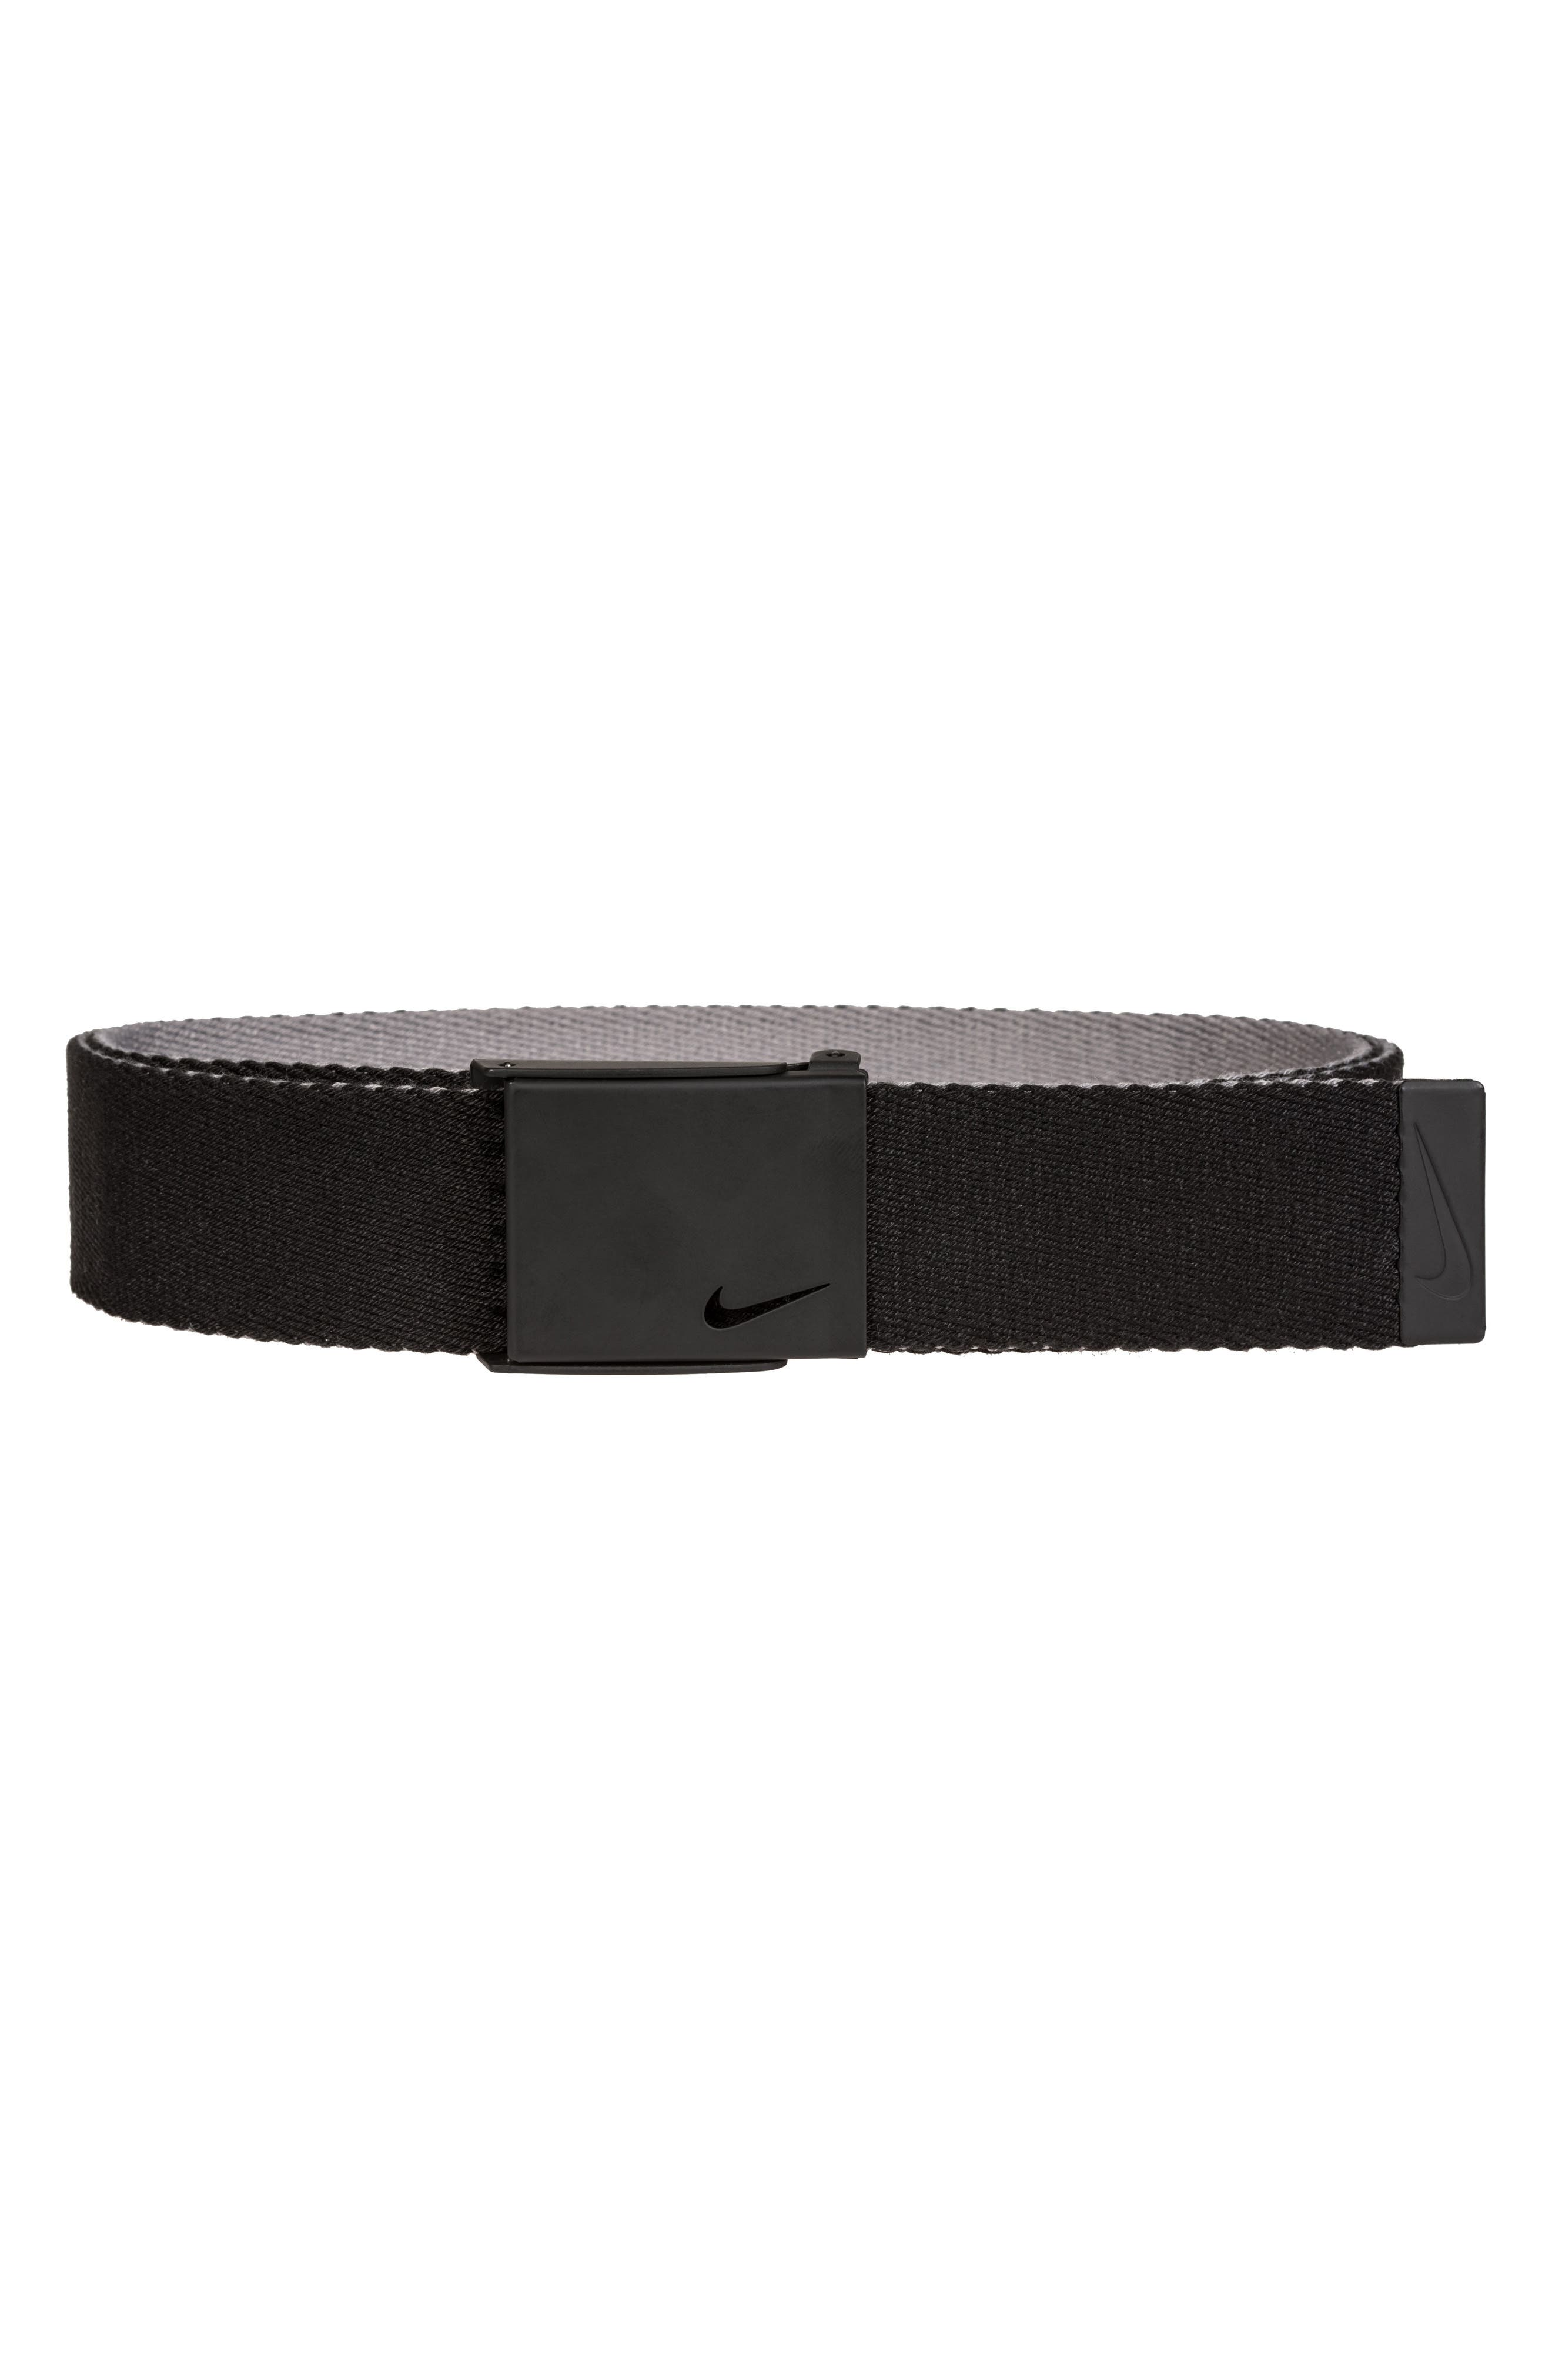 NIKE Essentials Reversible Webbed Belt, Main, color, BLACK/ CHARCOAL